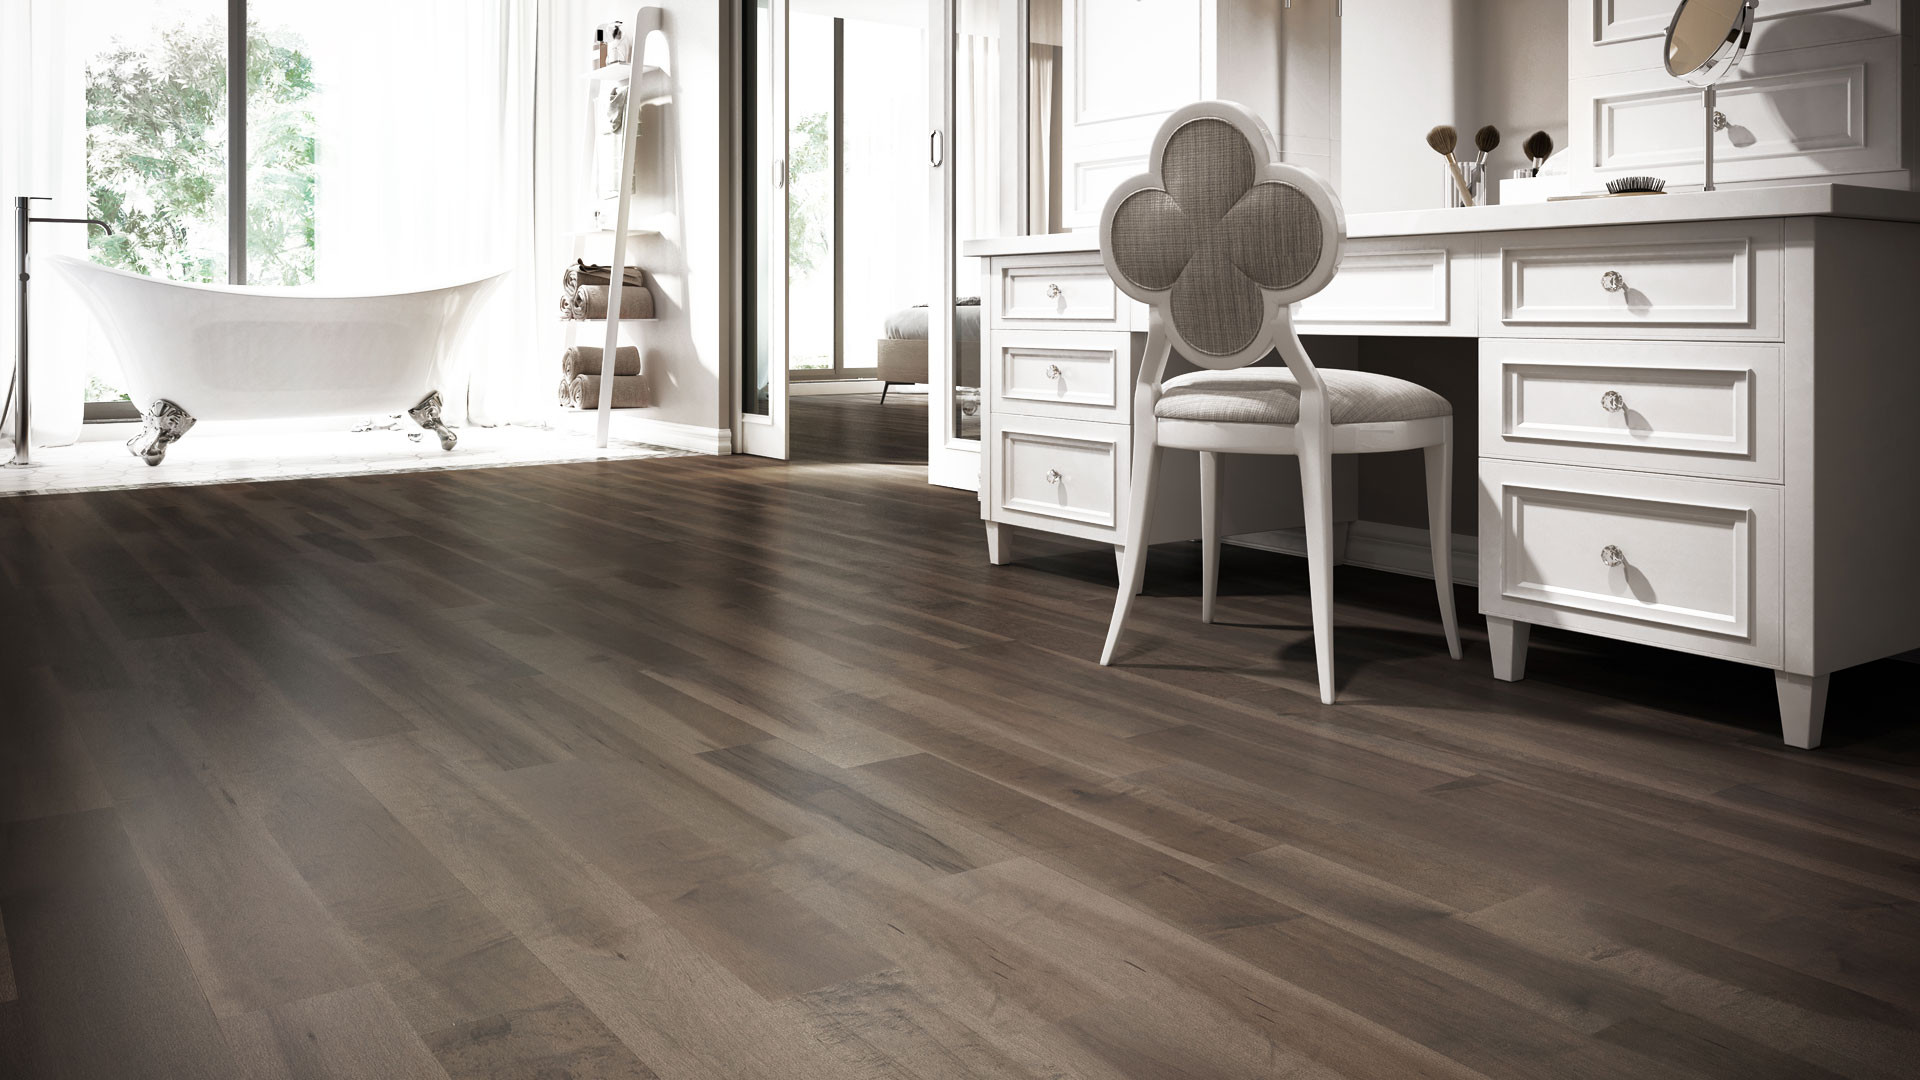 Dark Hardwood Floor Colors Of 4 Latest Hardwood Flooring Trends Lauzon Flooring Inside Learn More About Our Pure Genius by Reading Our Blog Post the Smartest Hardwood Flooring Weve Ever Seen